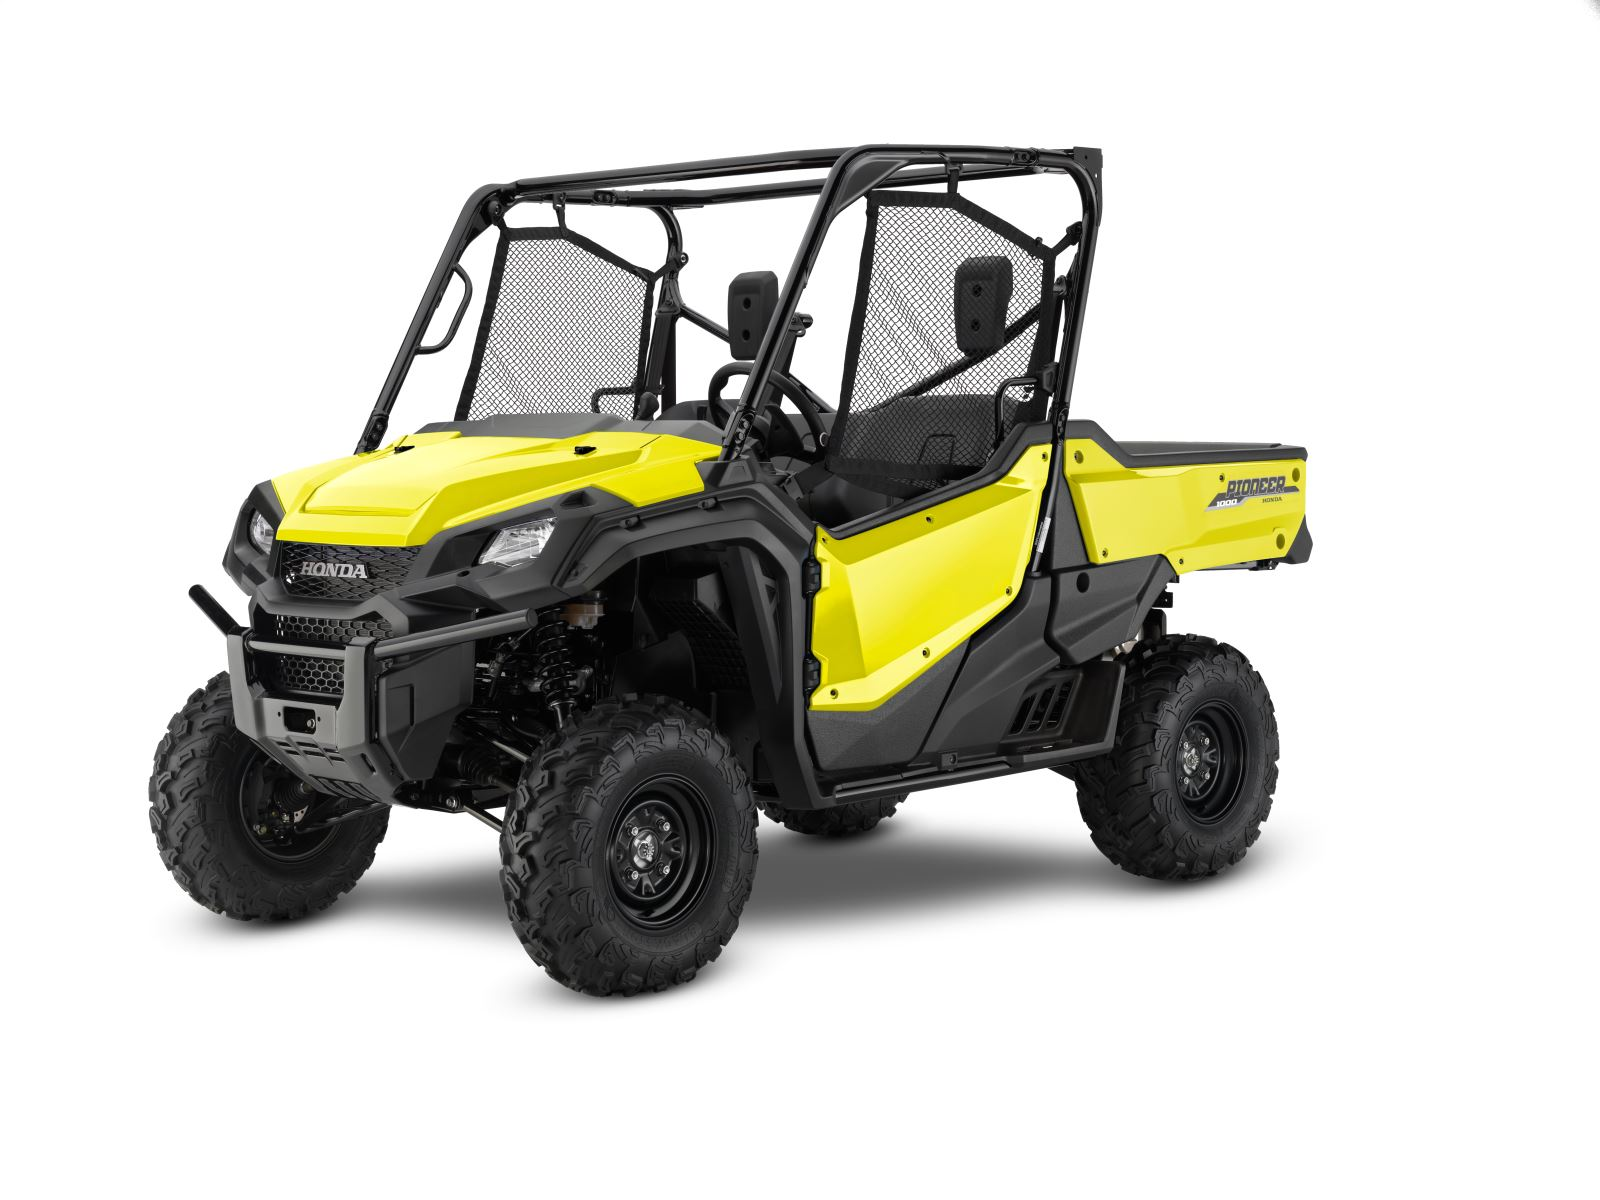 Honda Atv Side By Side >> Honda Reveals 2019 Side By Side Atv Models Announcement Comes On